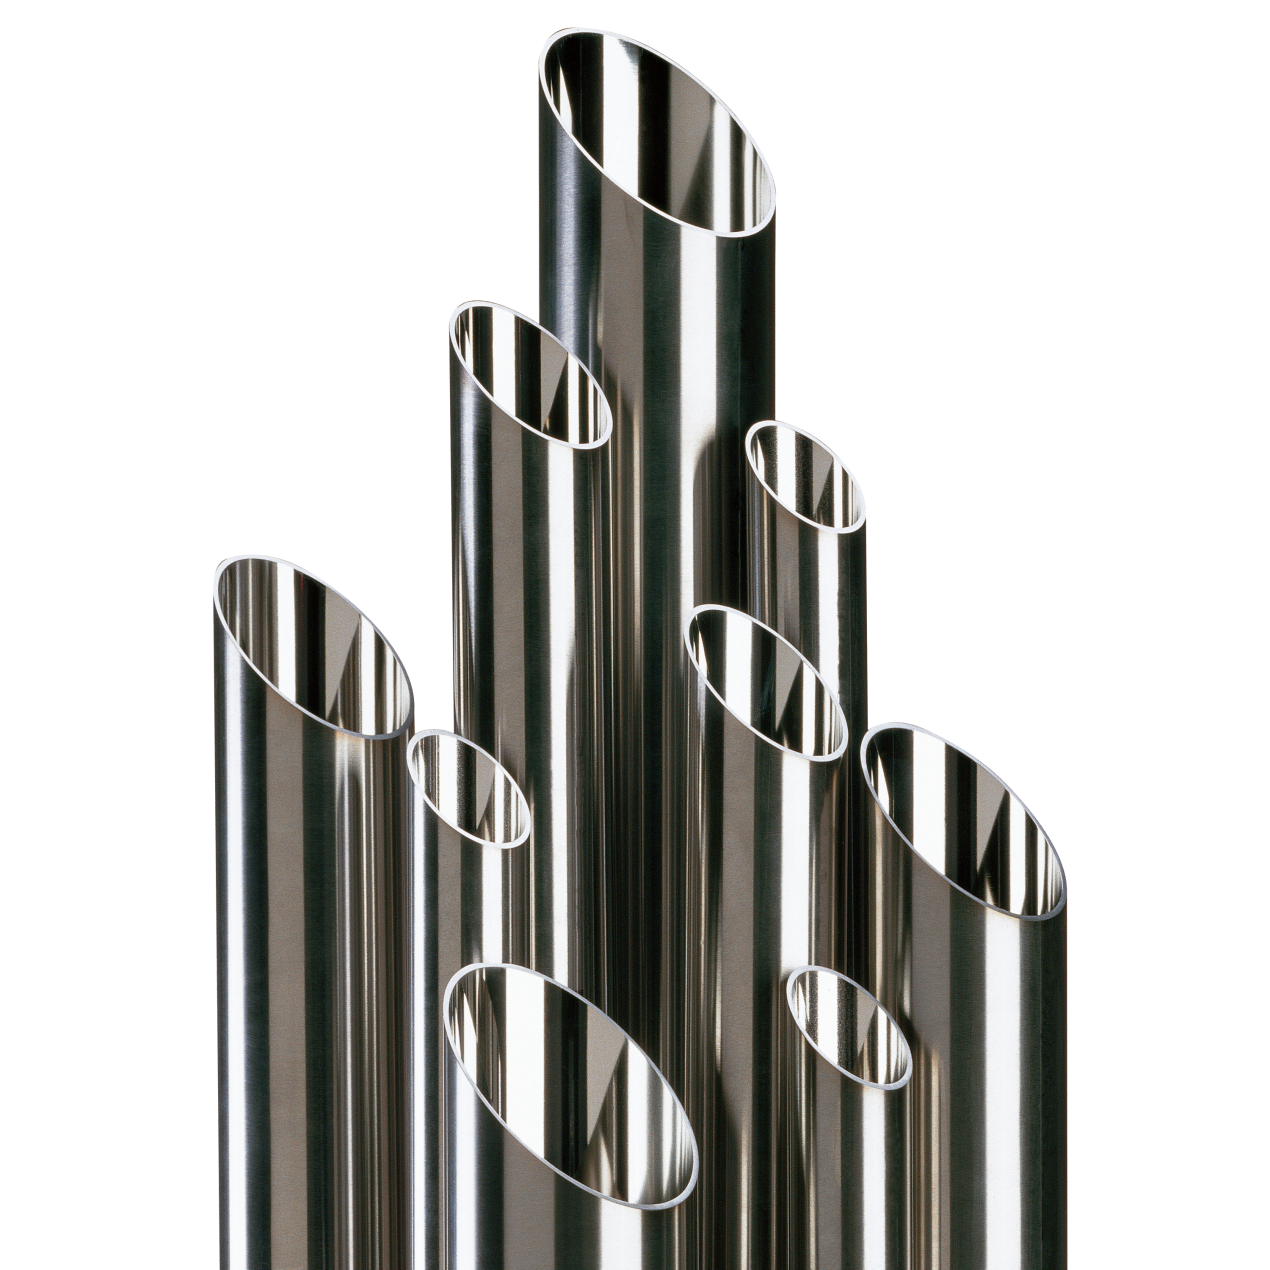 S S Pipe Manufacturer in Ahmedabad, S S Pipe Manufacturer in Gujarat, S S Pipe Manufacturer in India